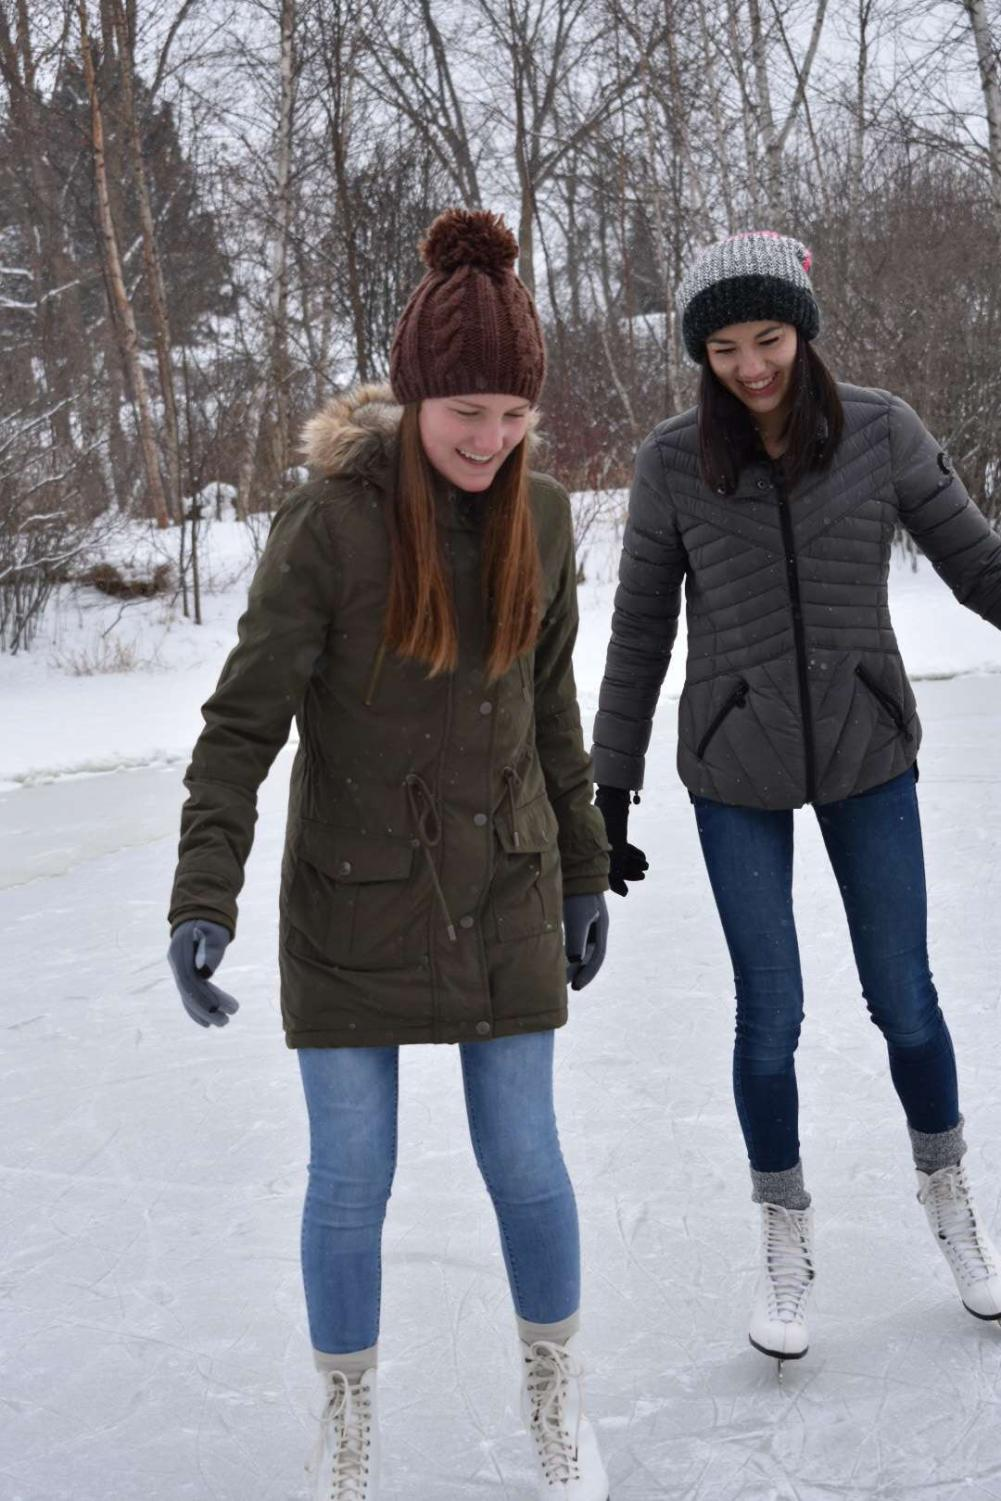 Despite the cold temperatures, sophomores Brooke Thomas and Cassie North venture out for an afternoon of ice skating.